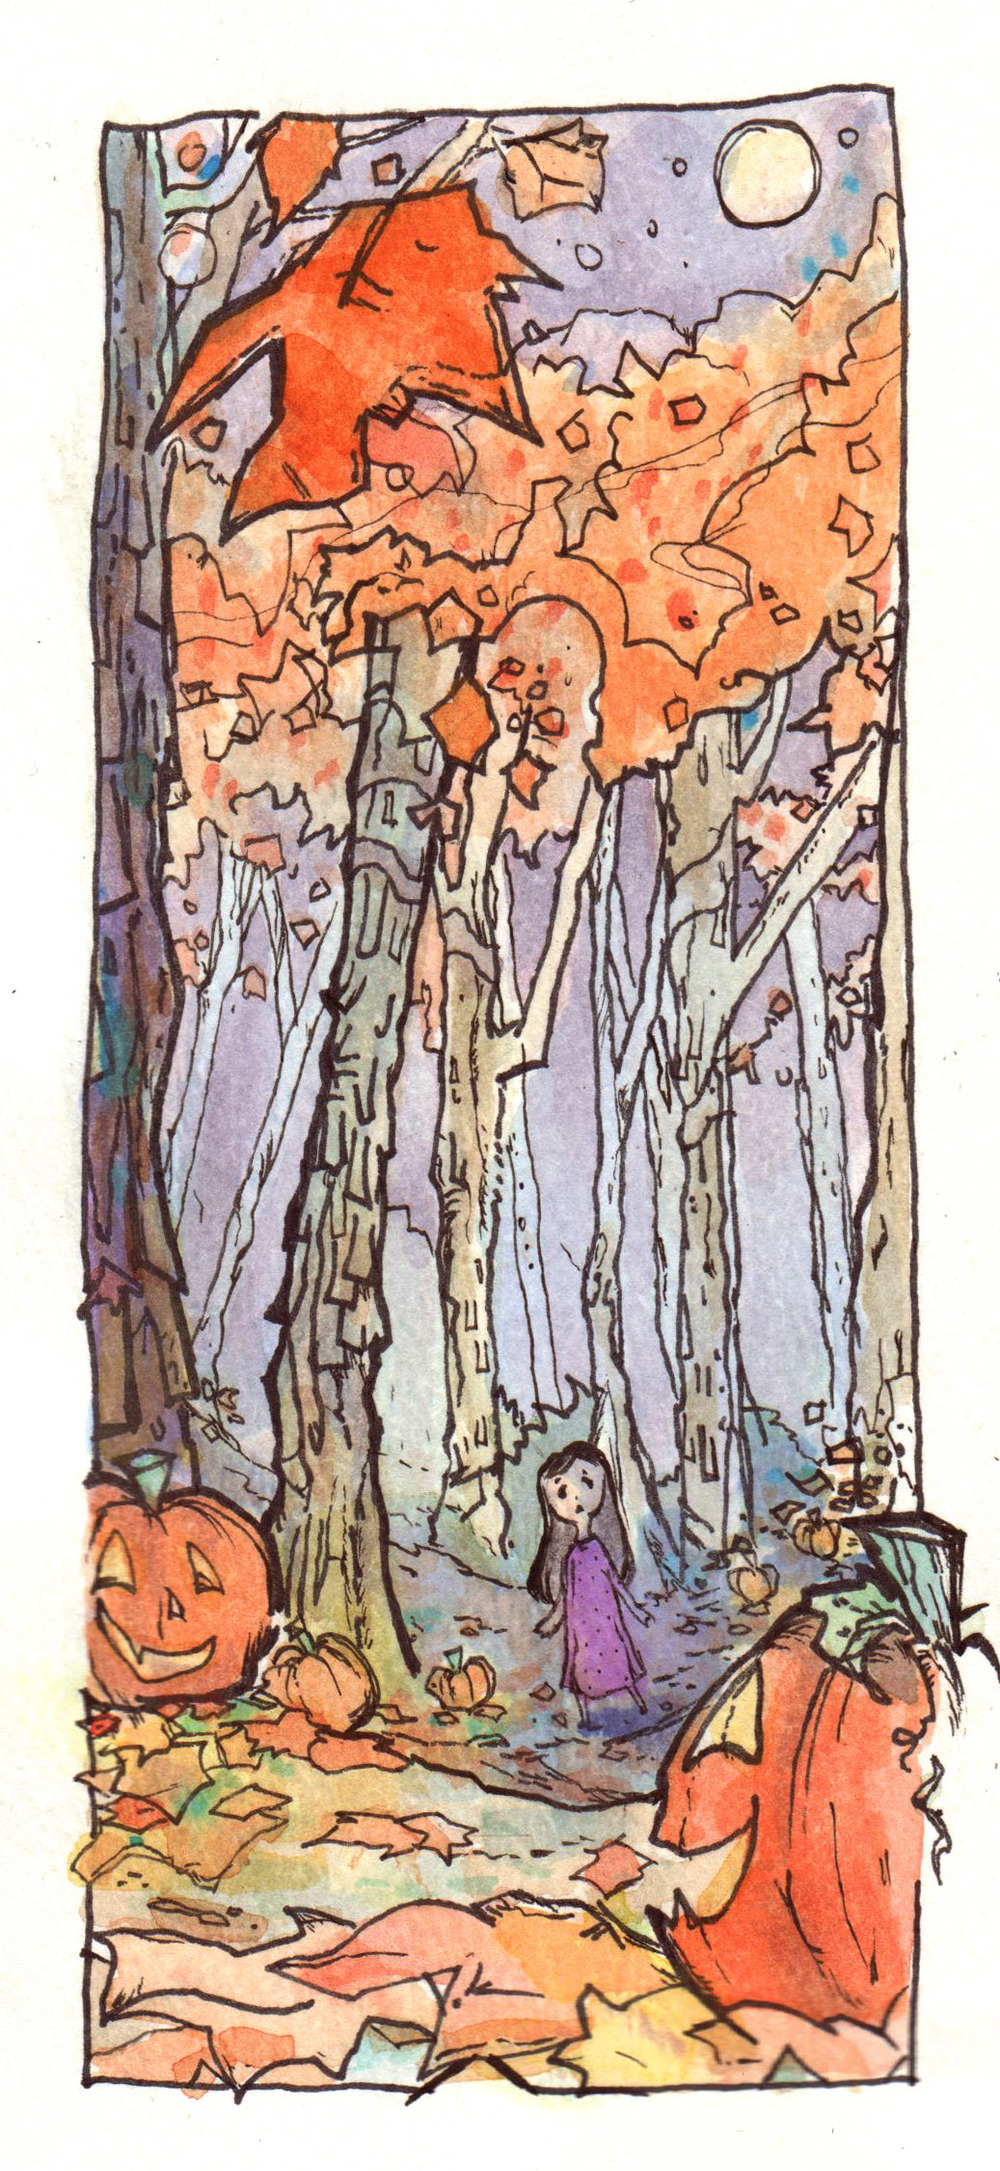 From Inktober 2015.  Used Prismacolor ink pens and watercolor.  You can see more under Sketchbook, or on my tumblr at http://stephanieburtner.tumblr.com/archive